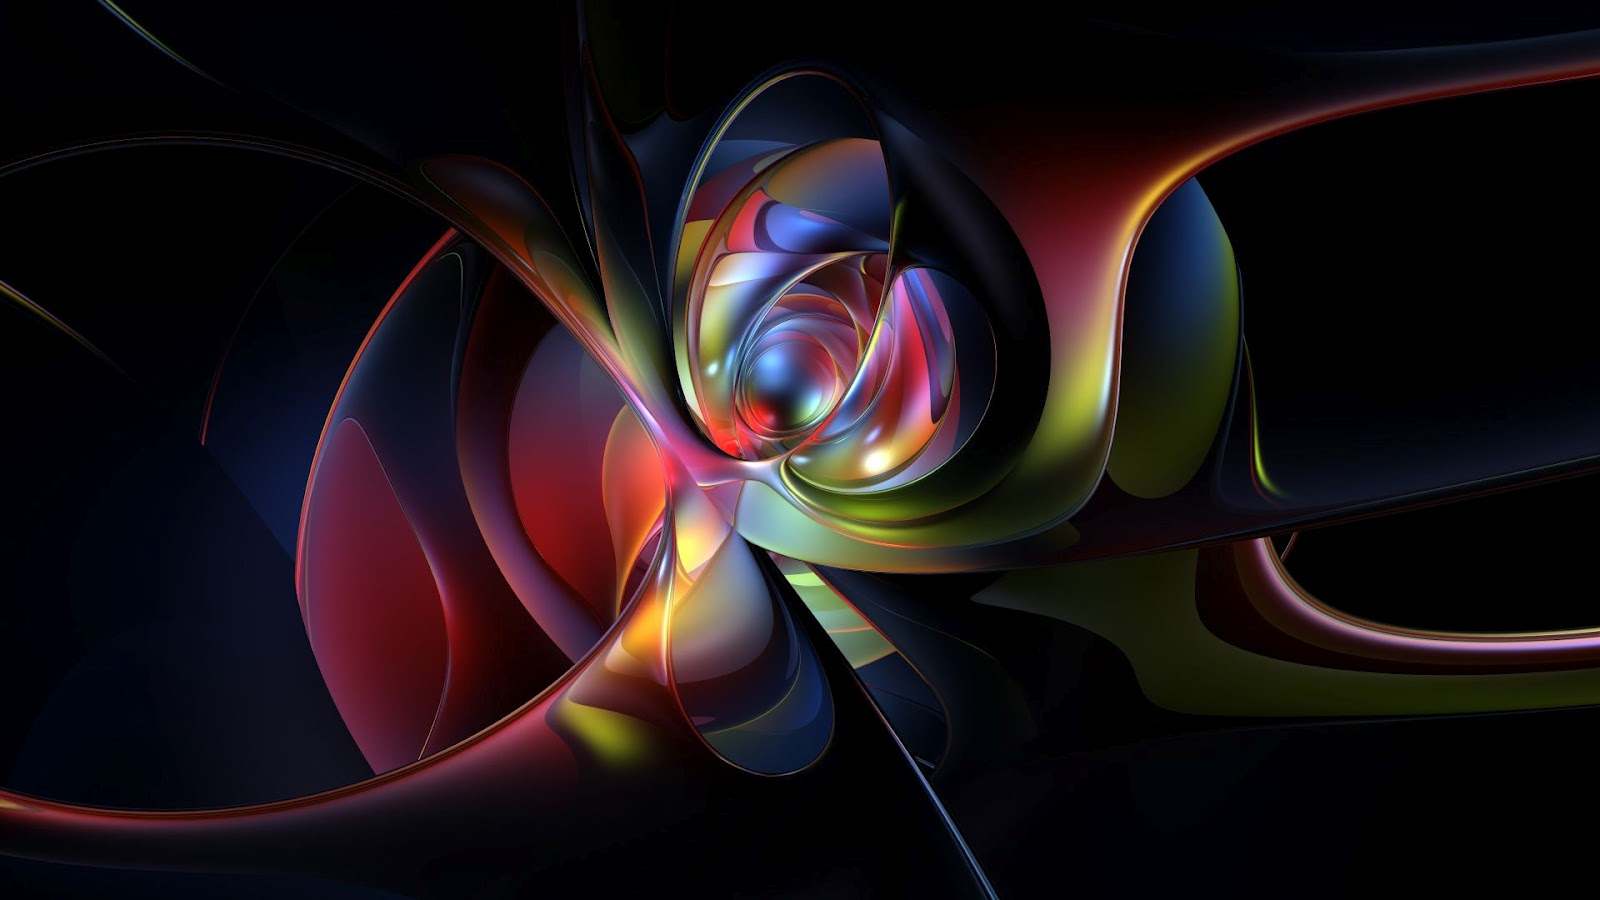 Hd Abstract Wallpapers 1080p